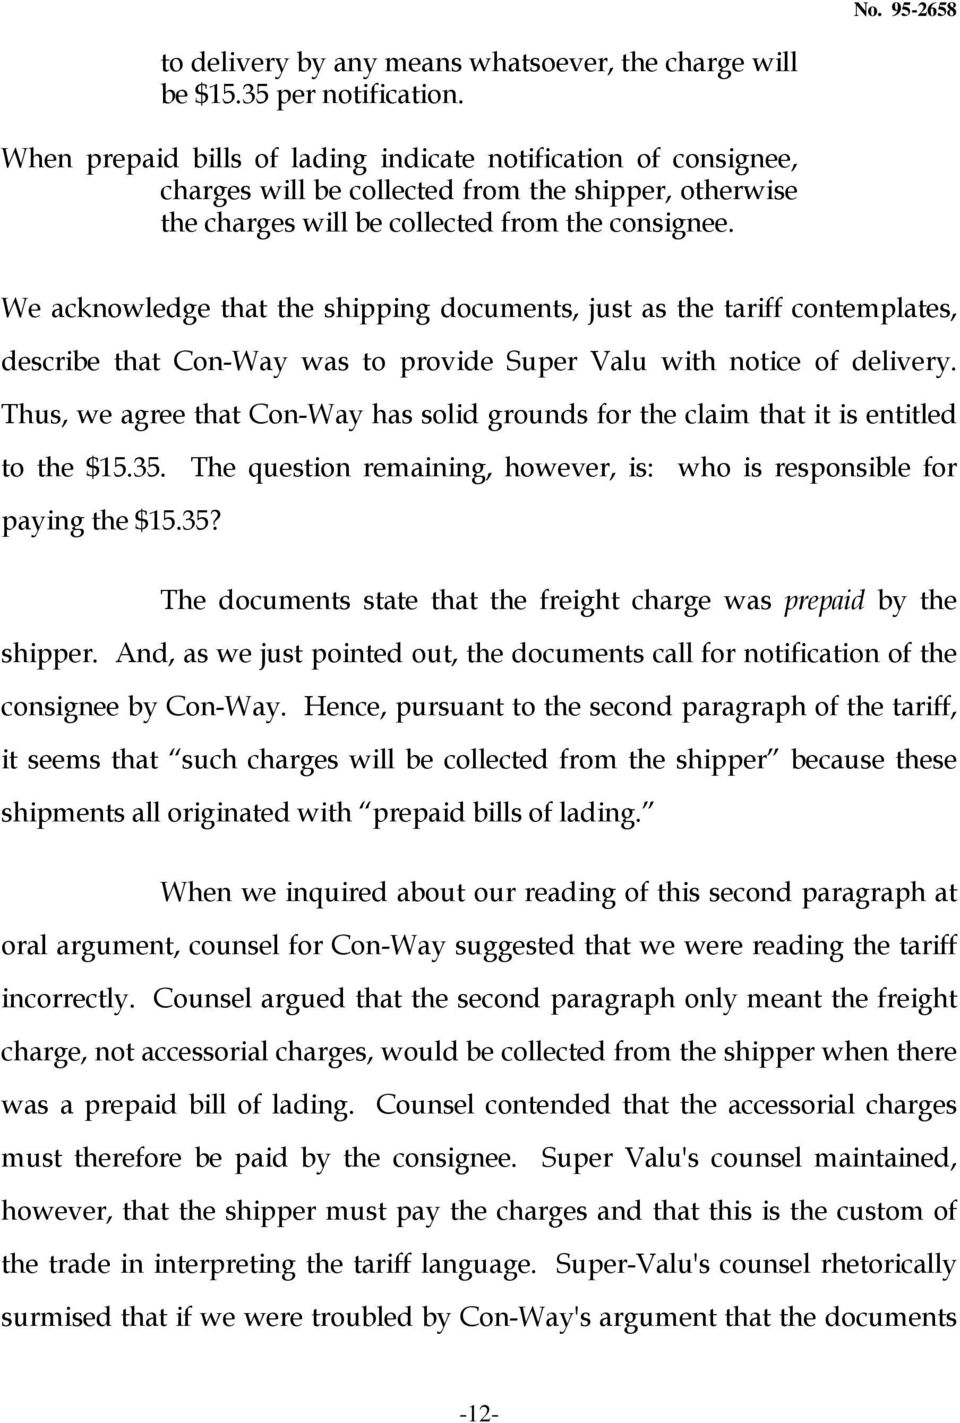 We acknowledge that the shipping documents, just as the tariff contemplates, describe that Con-Way was to provide Super Valu with notice of delivery.